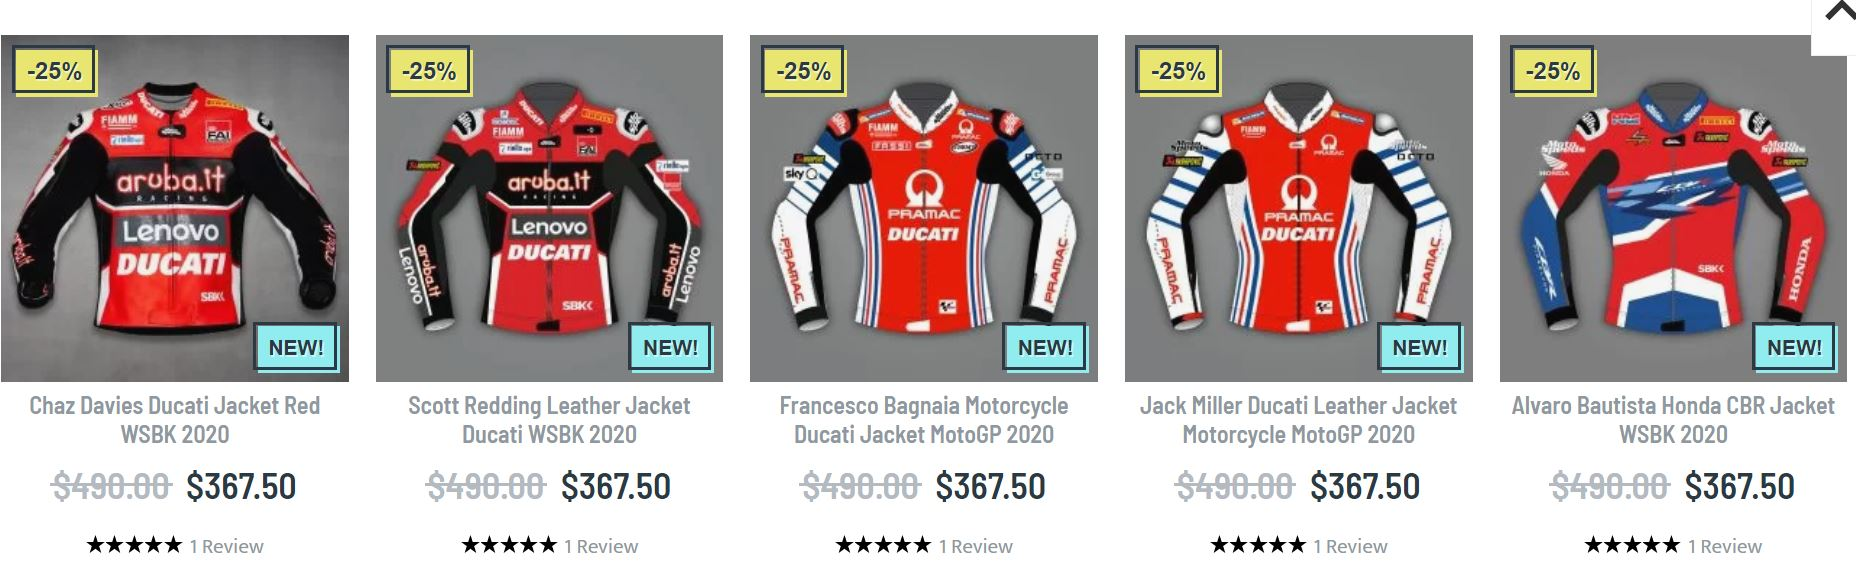 Motogp racing jacket